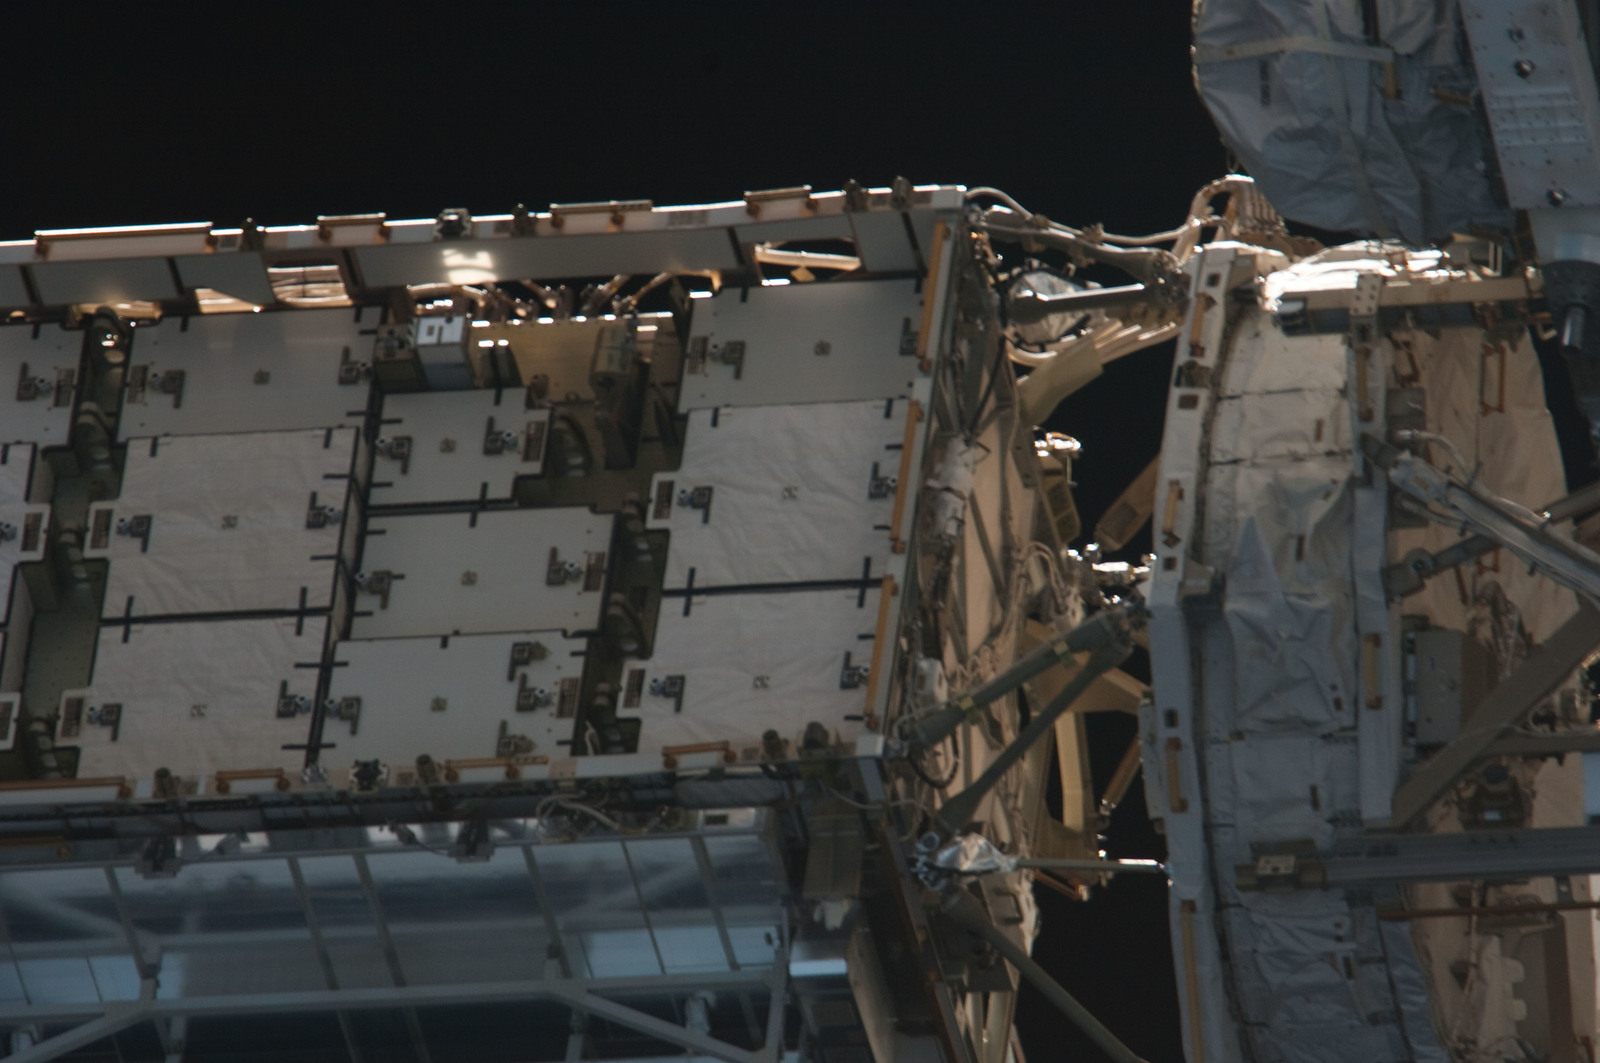 S134E011384 - STS-134 - Close-up view of Port Side Truss Segments